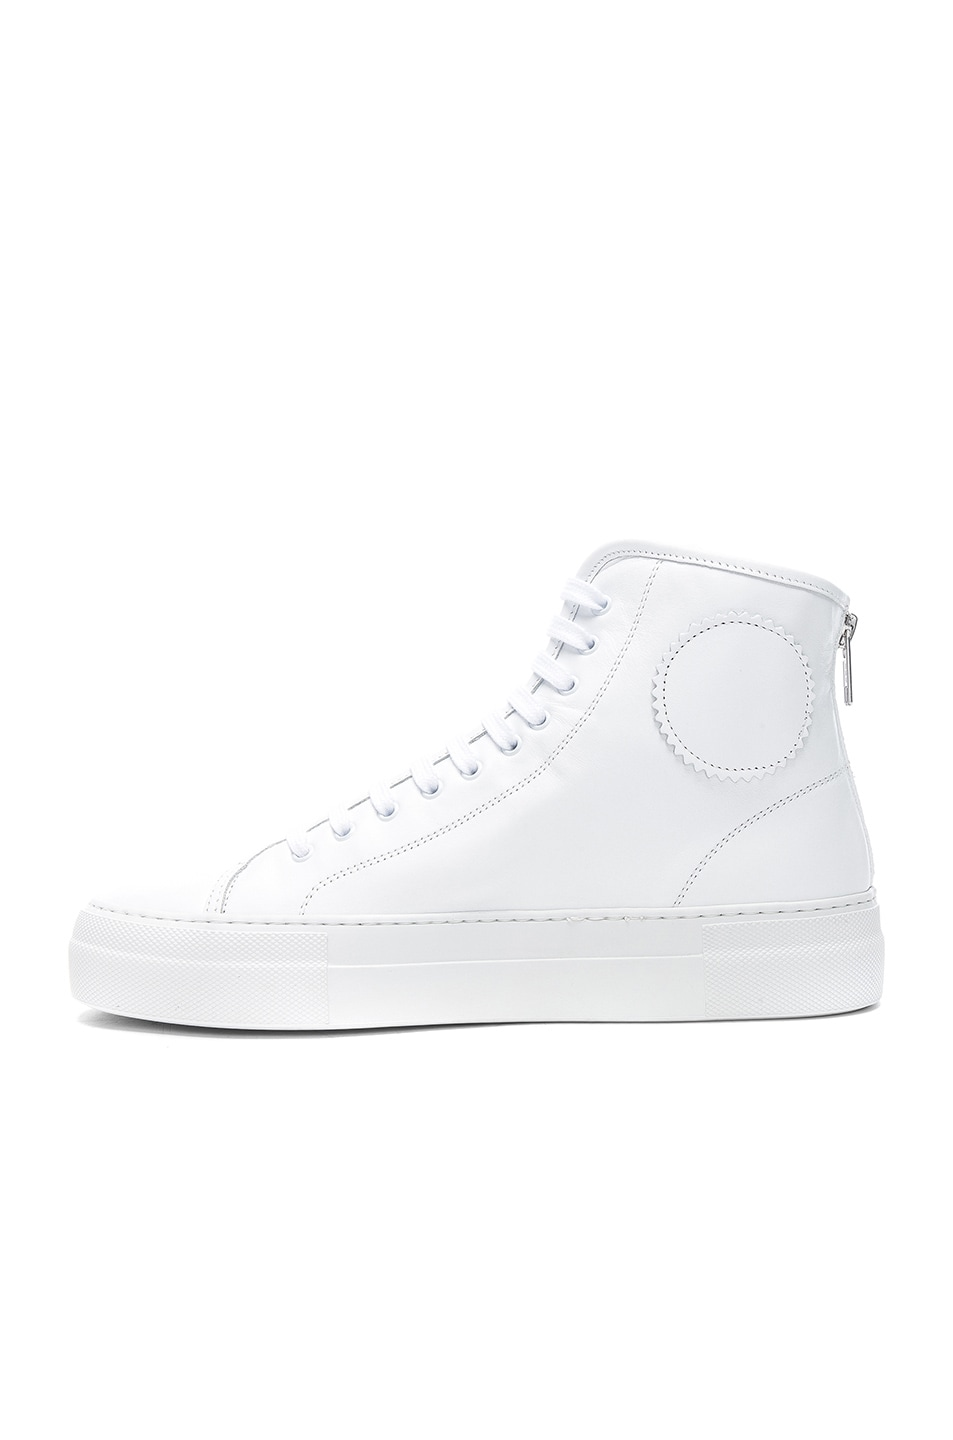 COMMON PROJECTS Leather High Tournament Super Sneakers in . F2CT2Ye